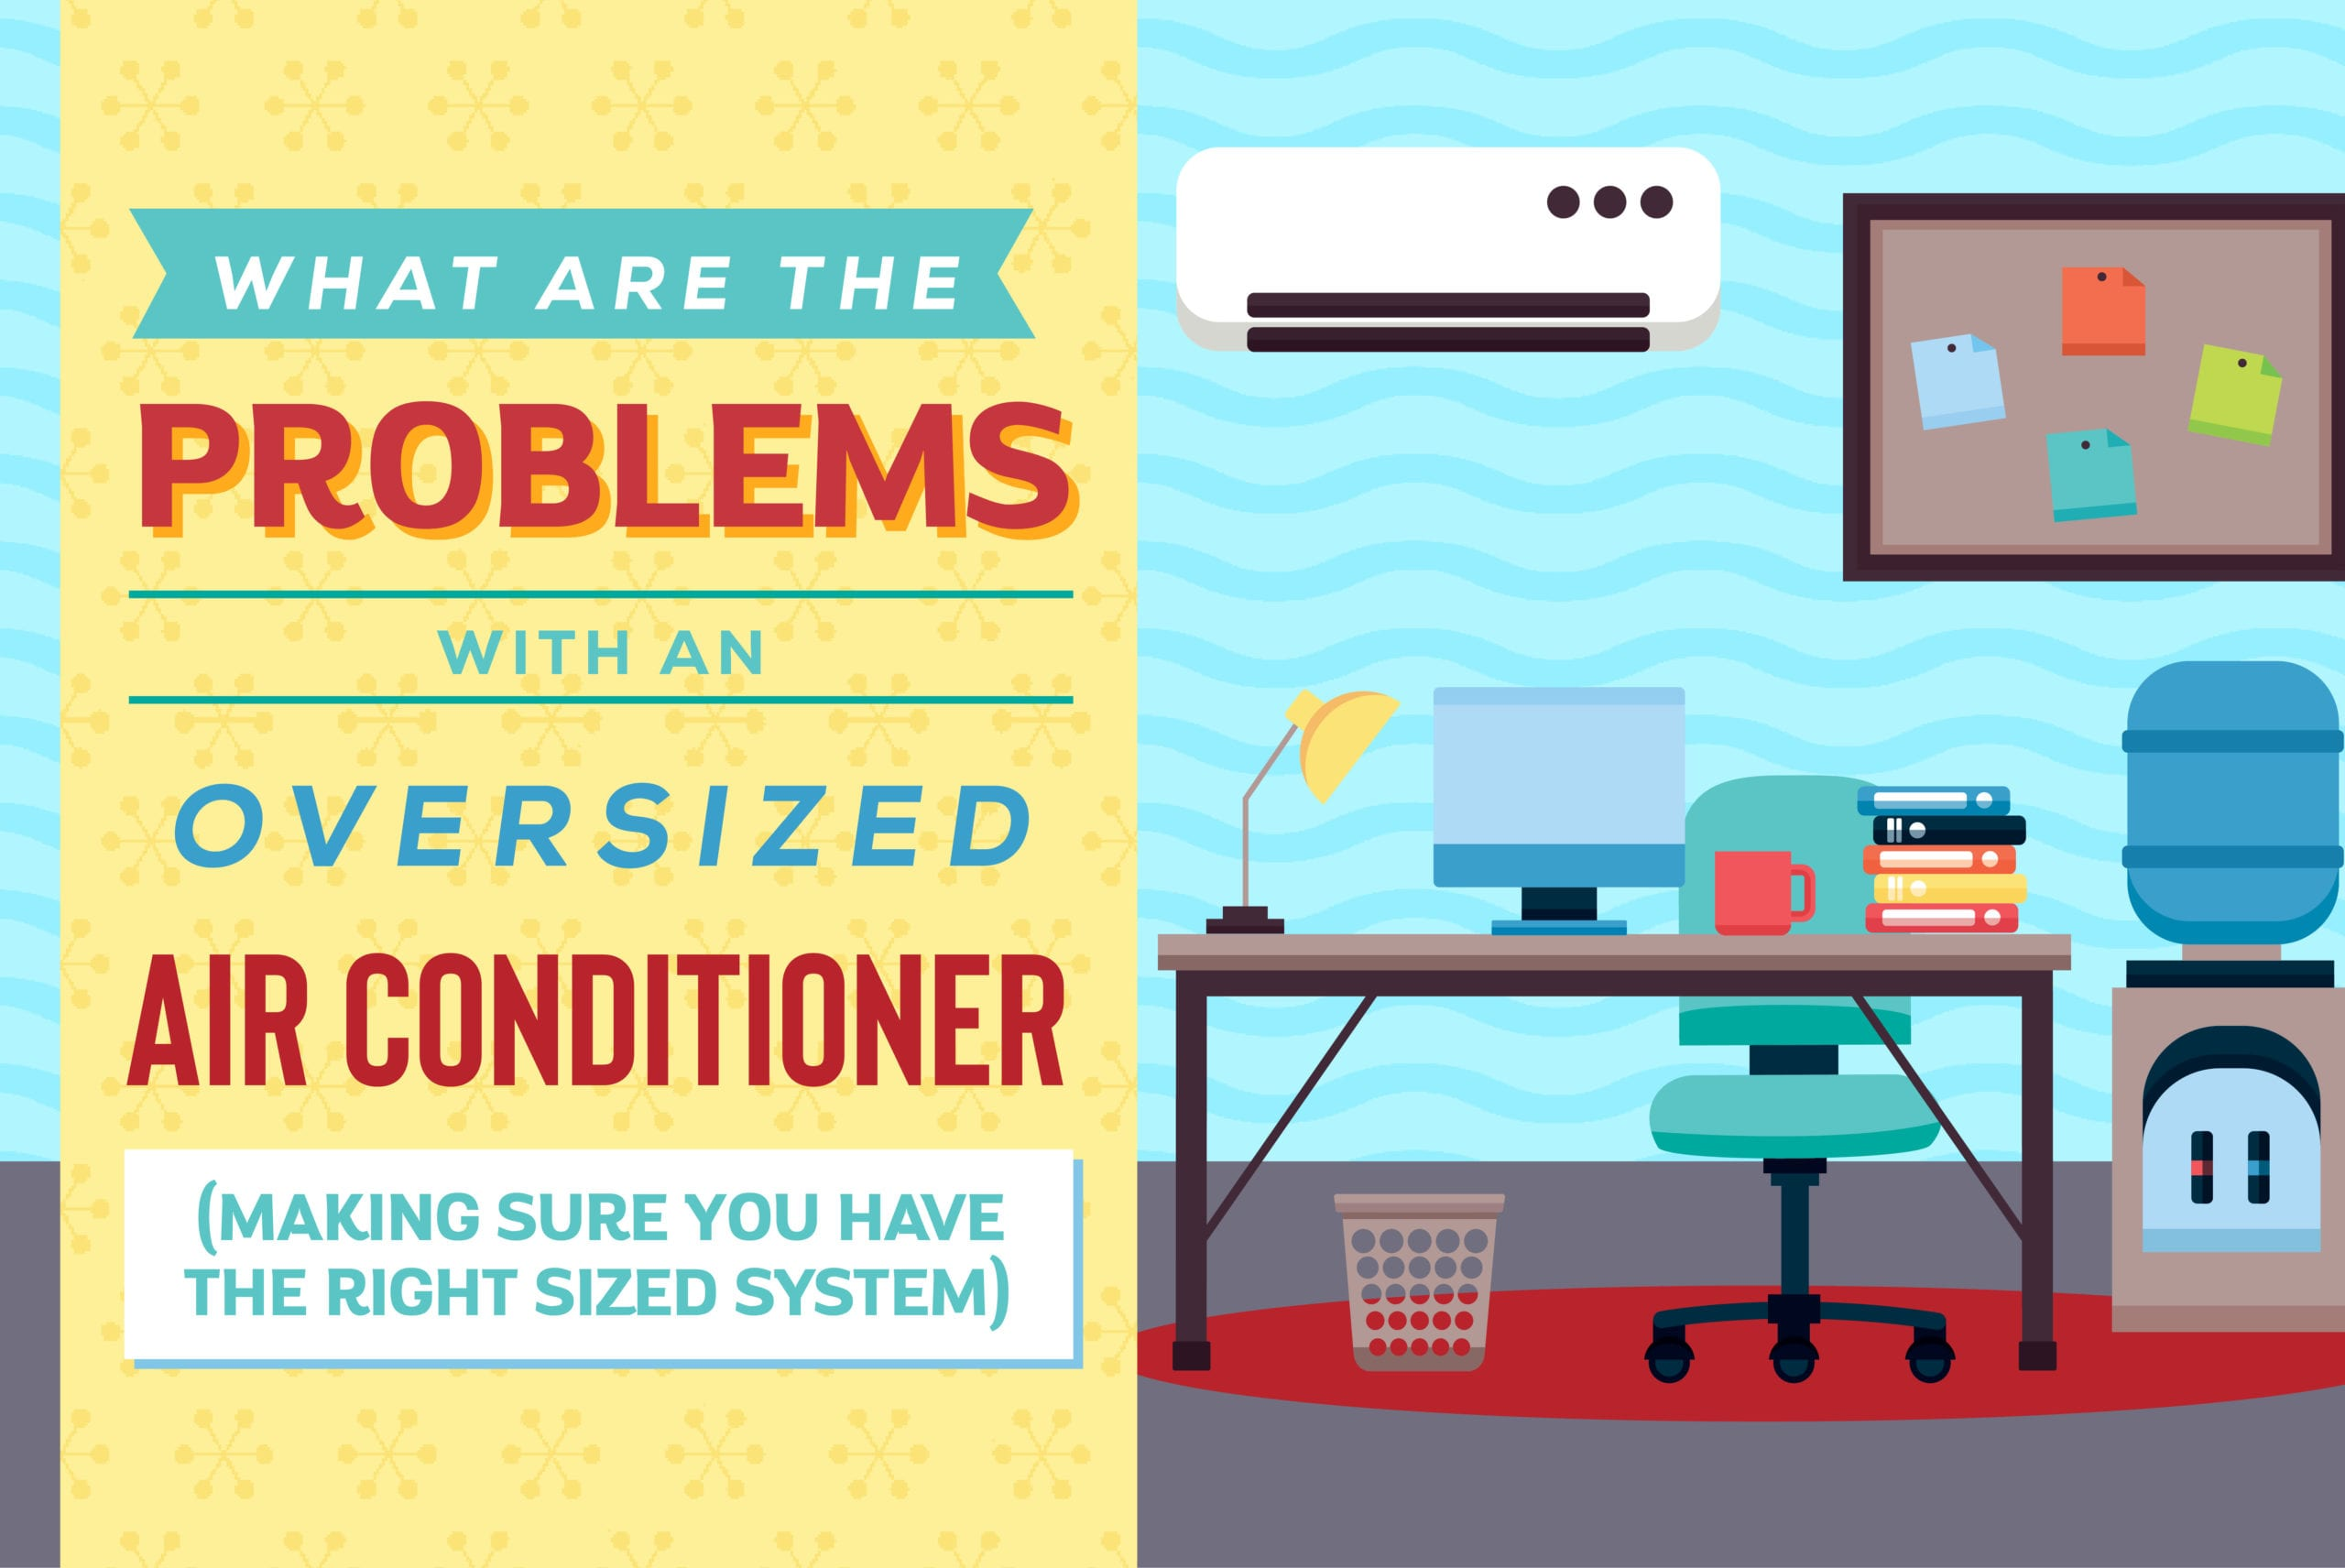 Problems With An Oversized Air Conditioner